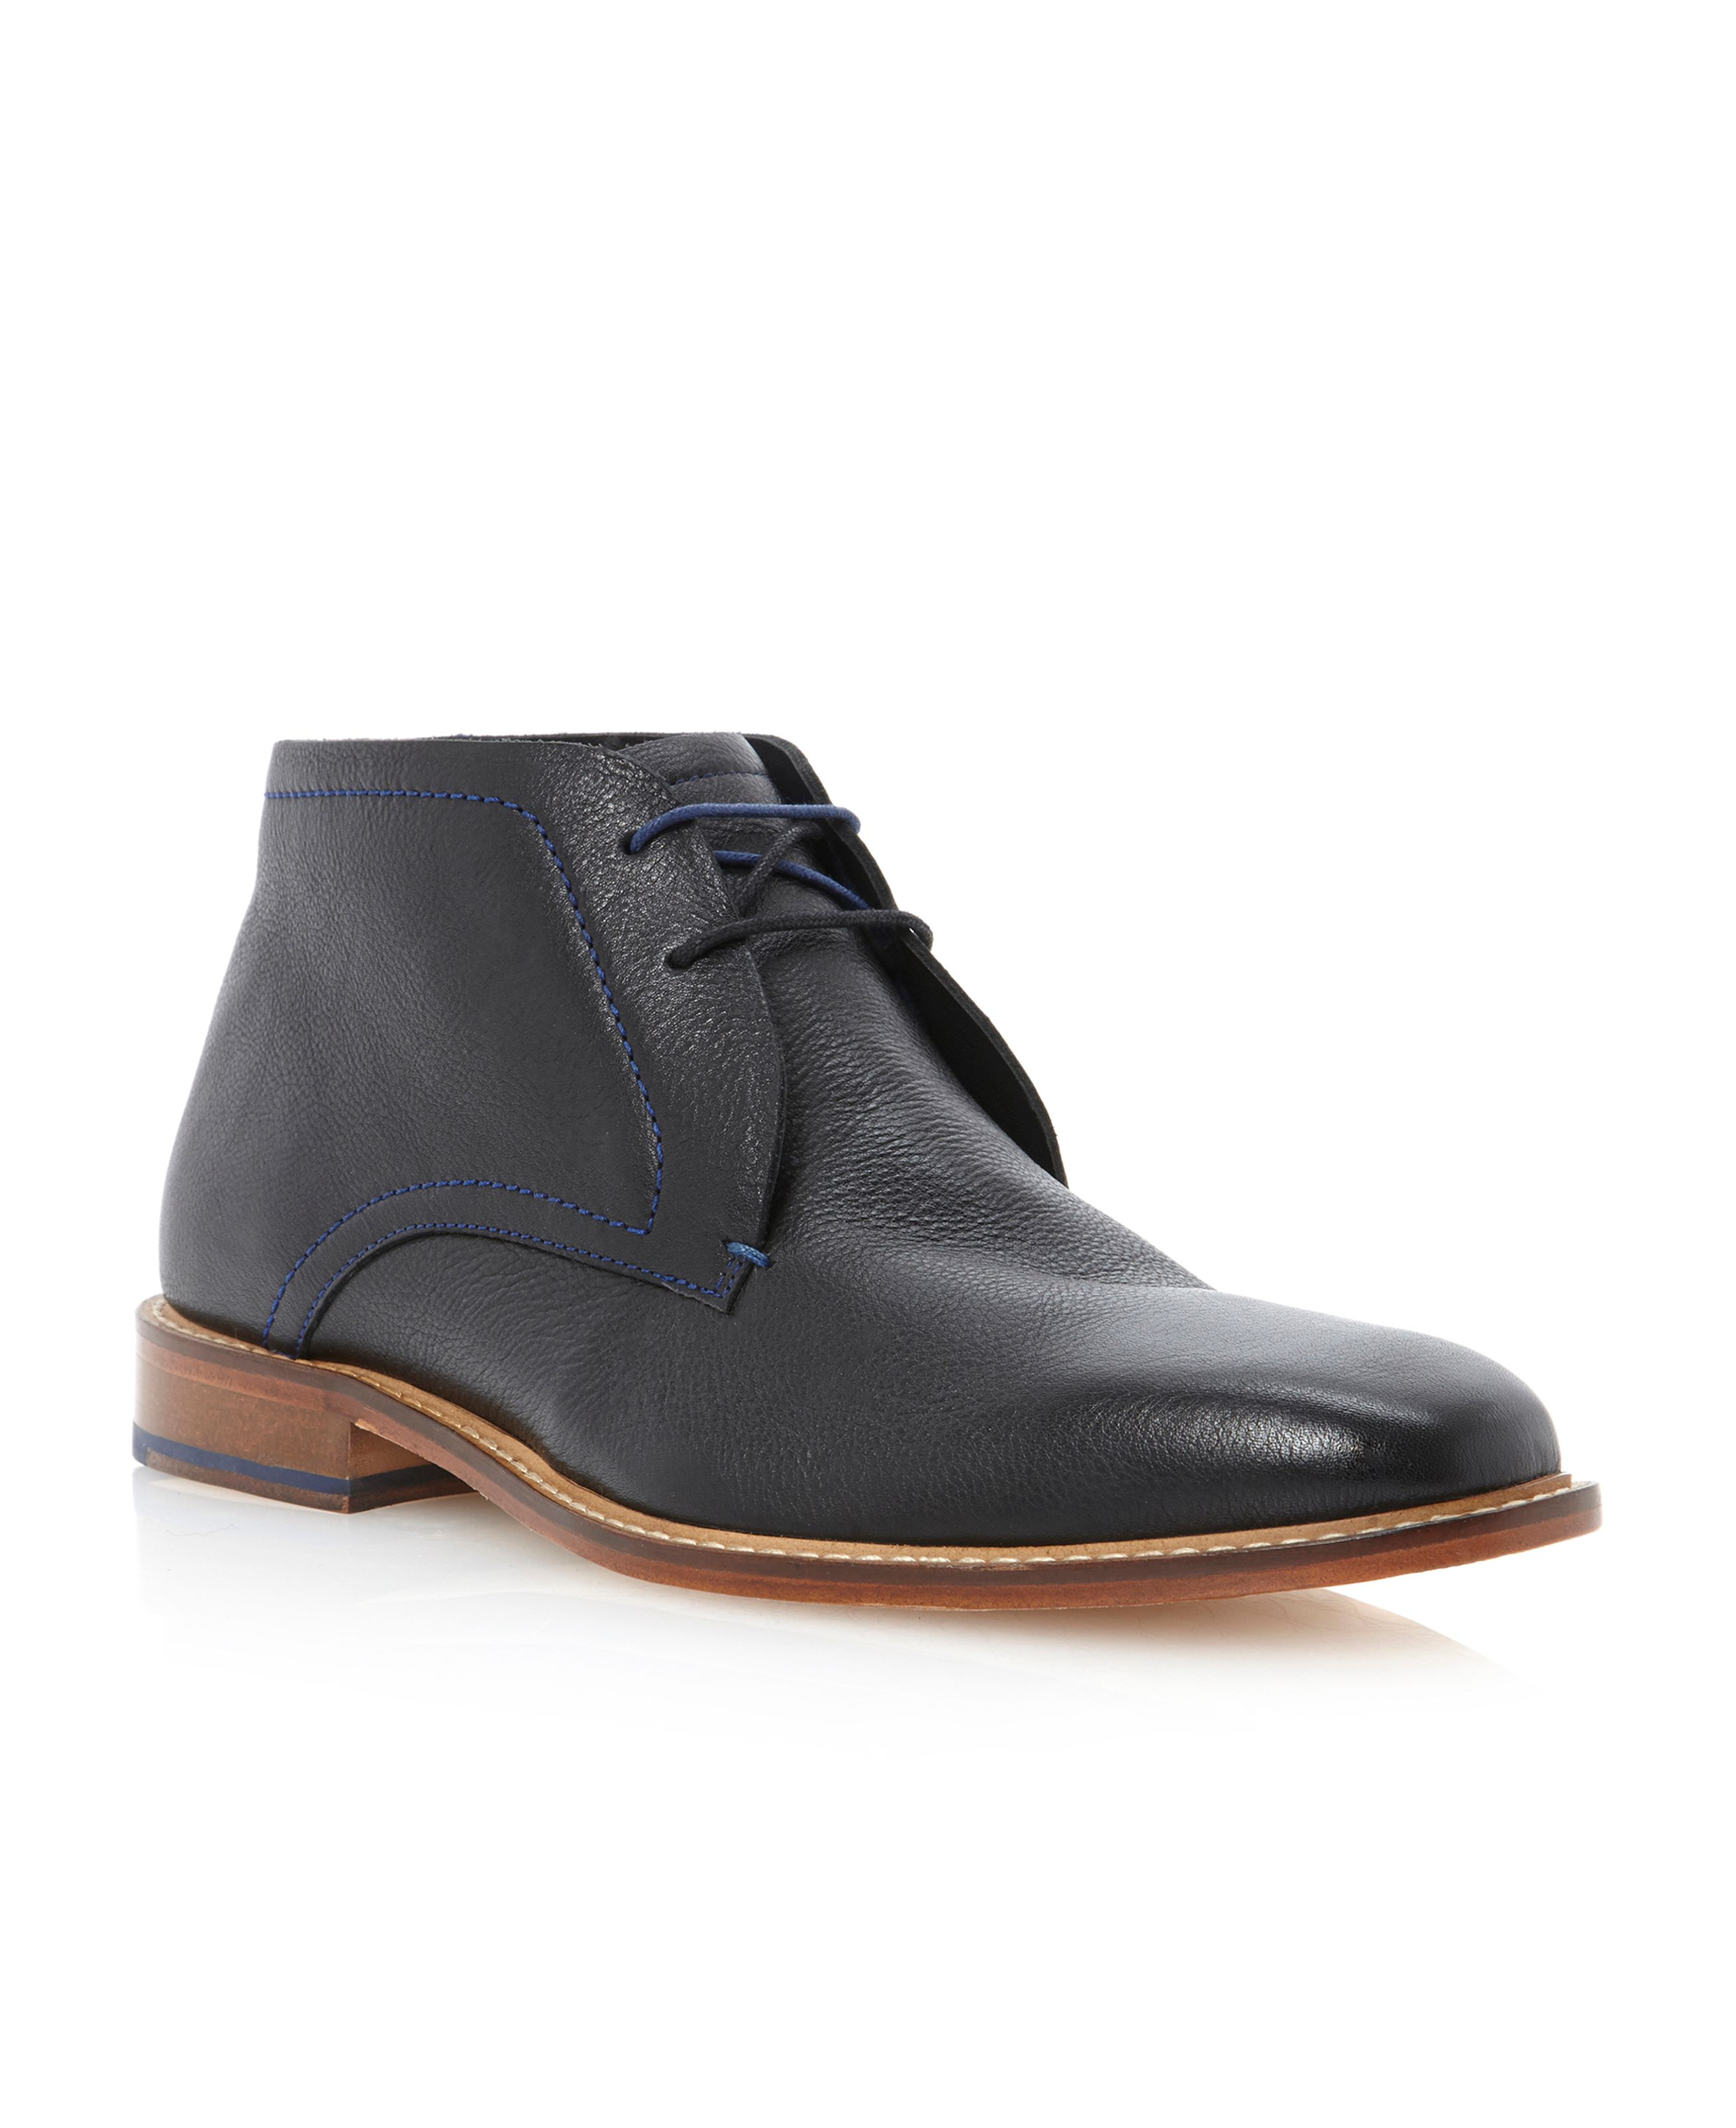 Torsdi-formal chukka boot